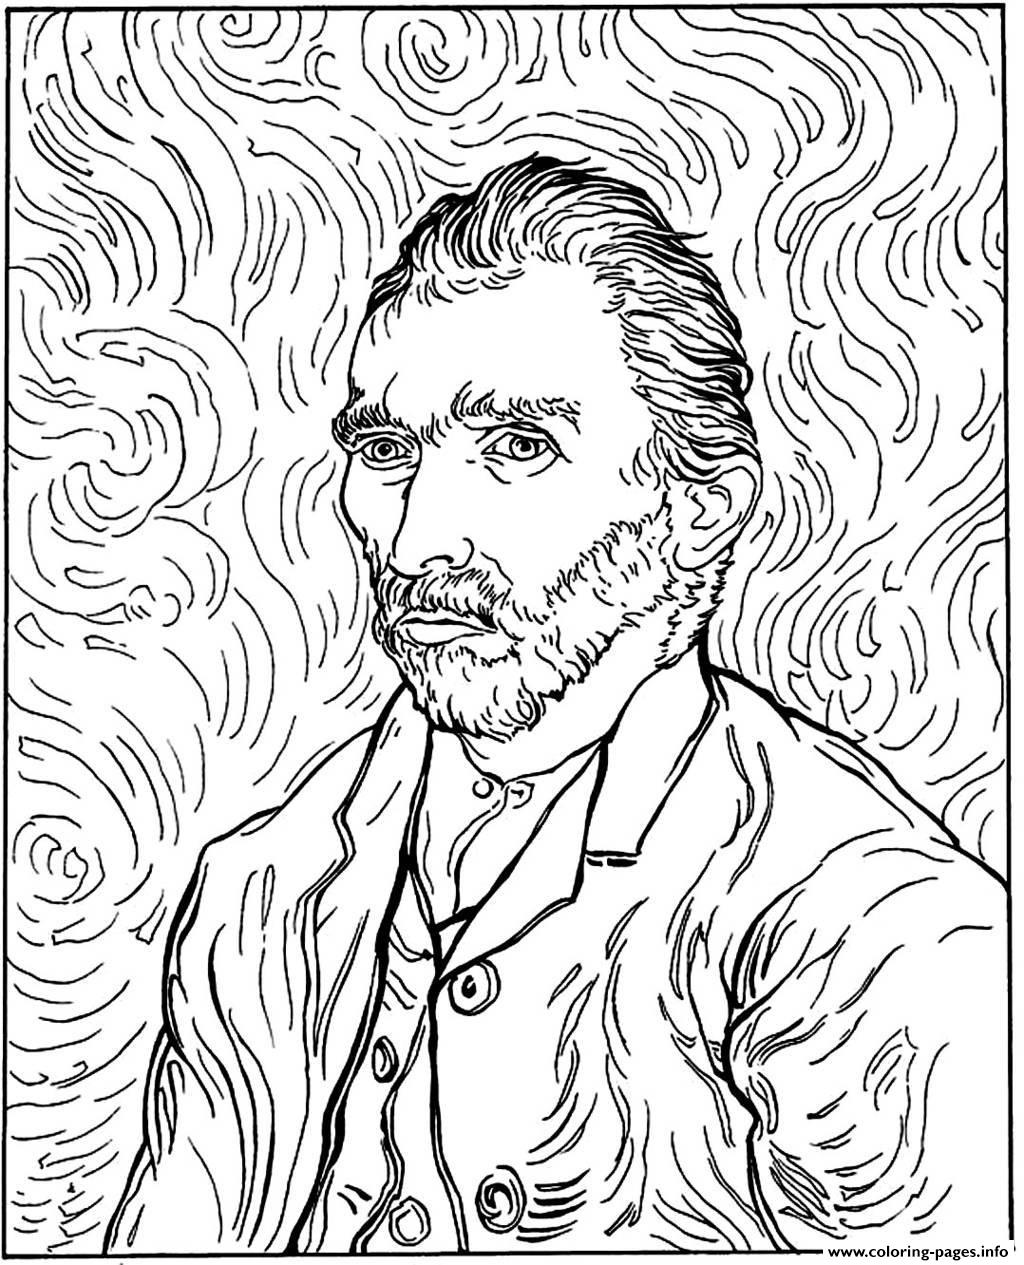 van gogh autoportrait coloring pages printable